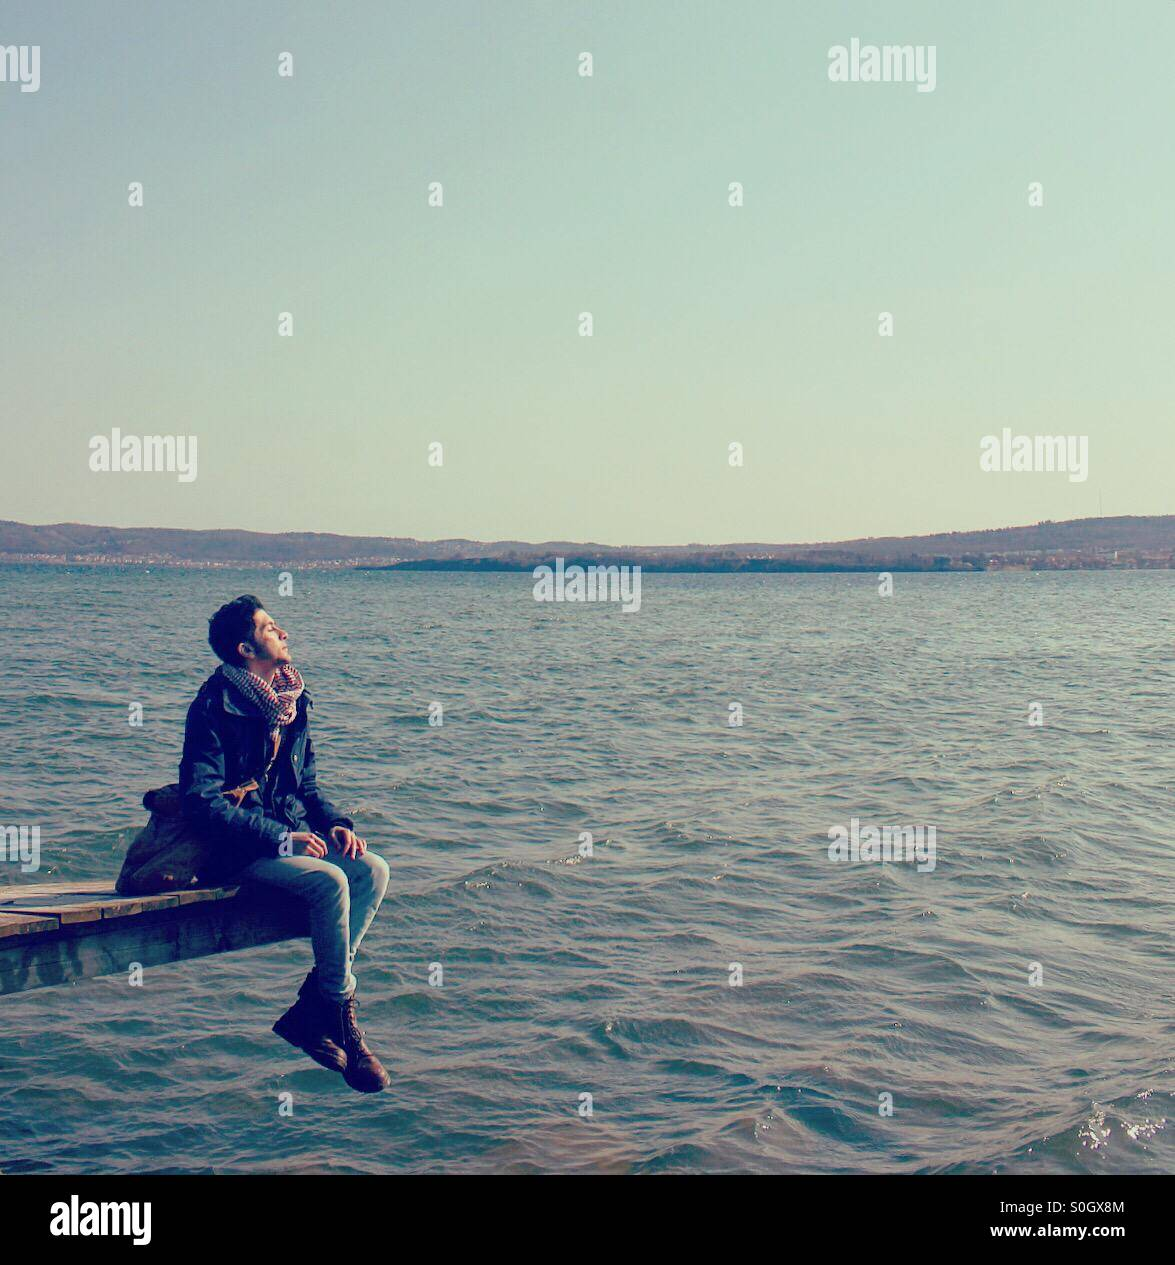 Deep in thoughts - Stock Image